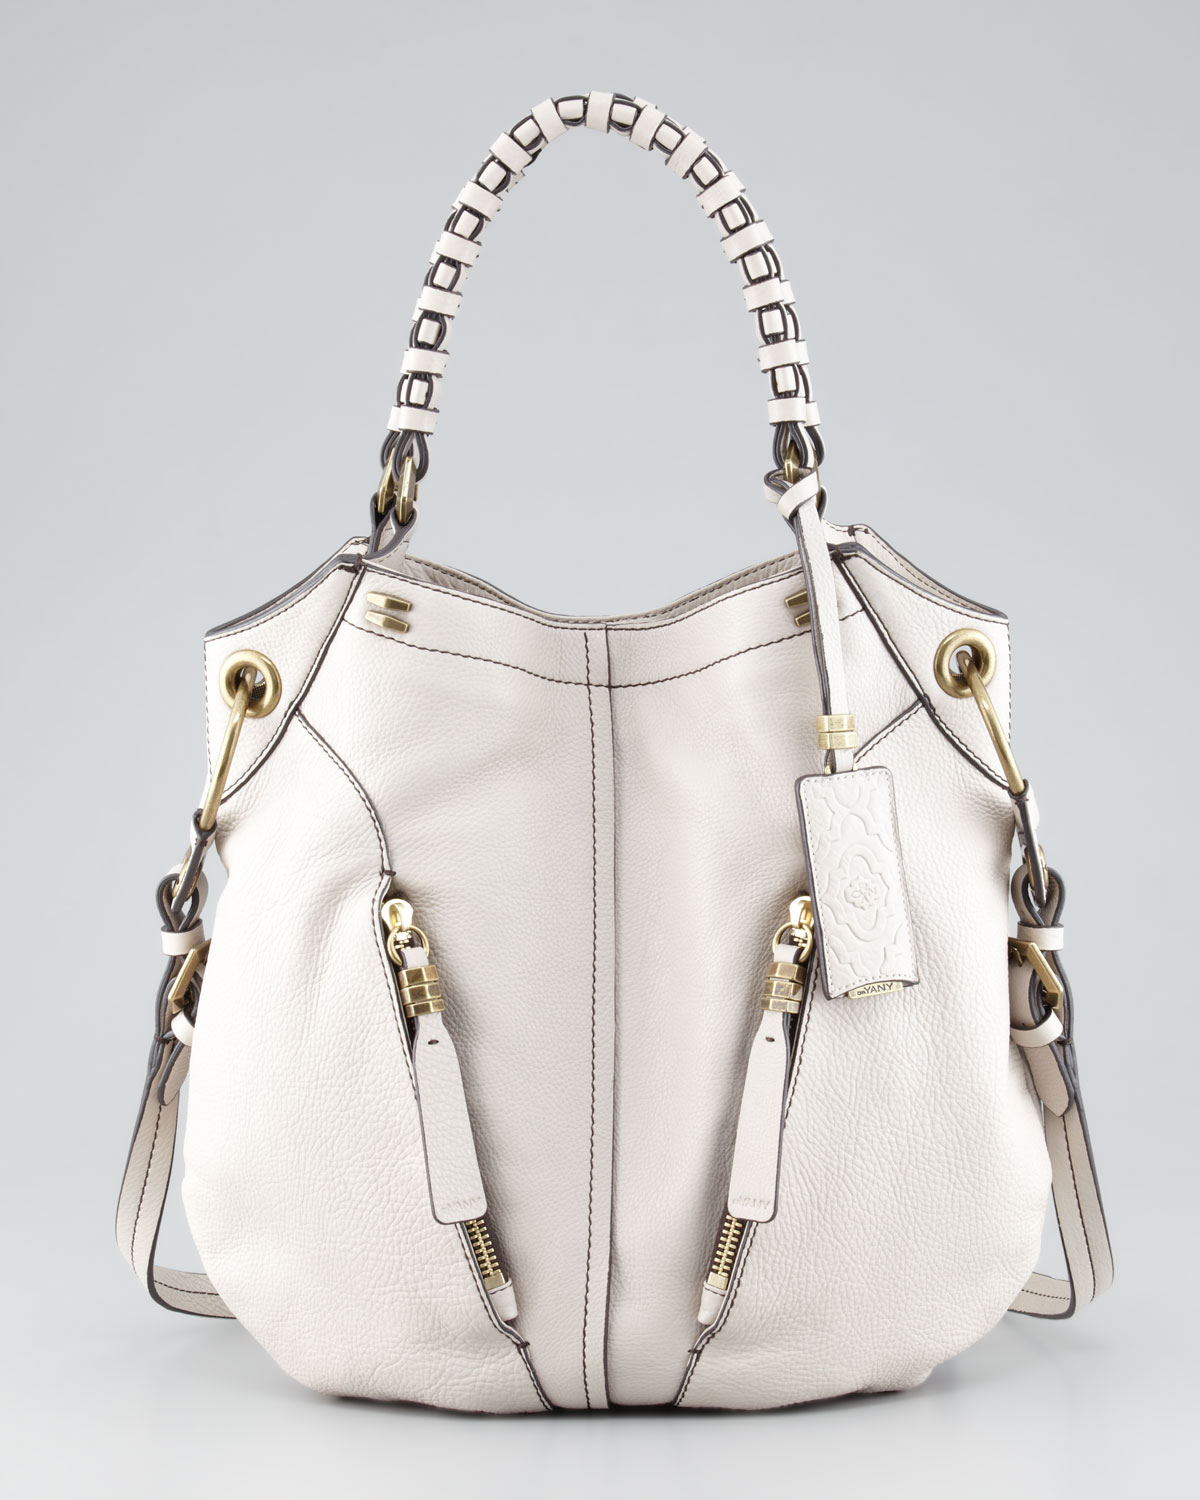 Oryany Gwen Leather Shoulder Bag in White | Lyst